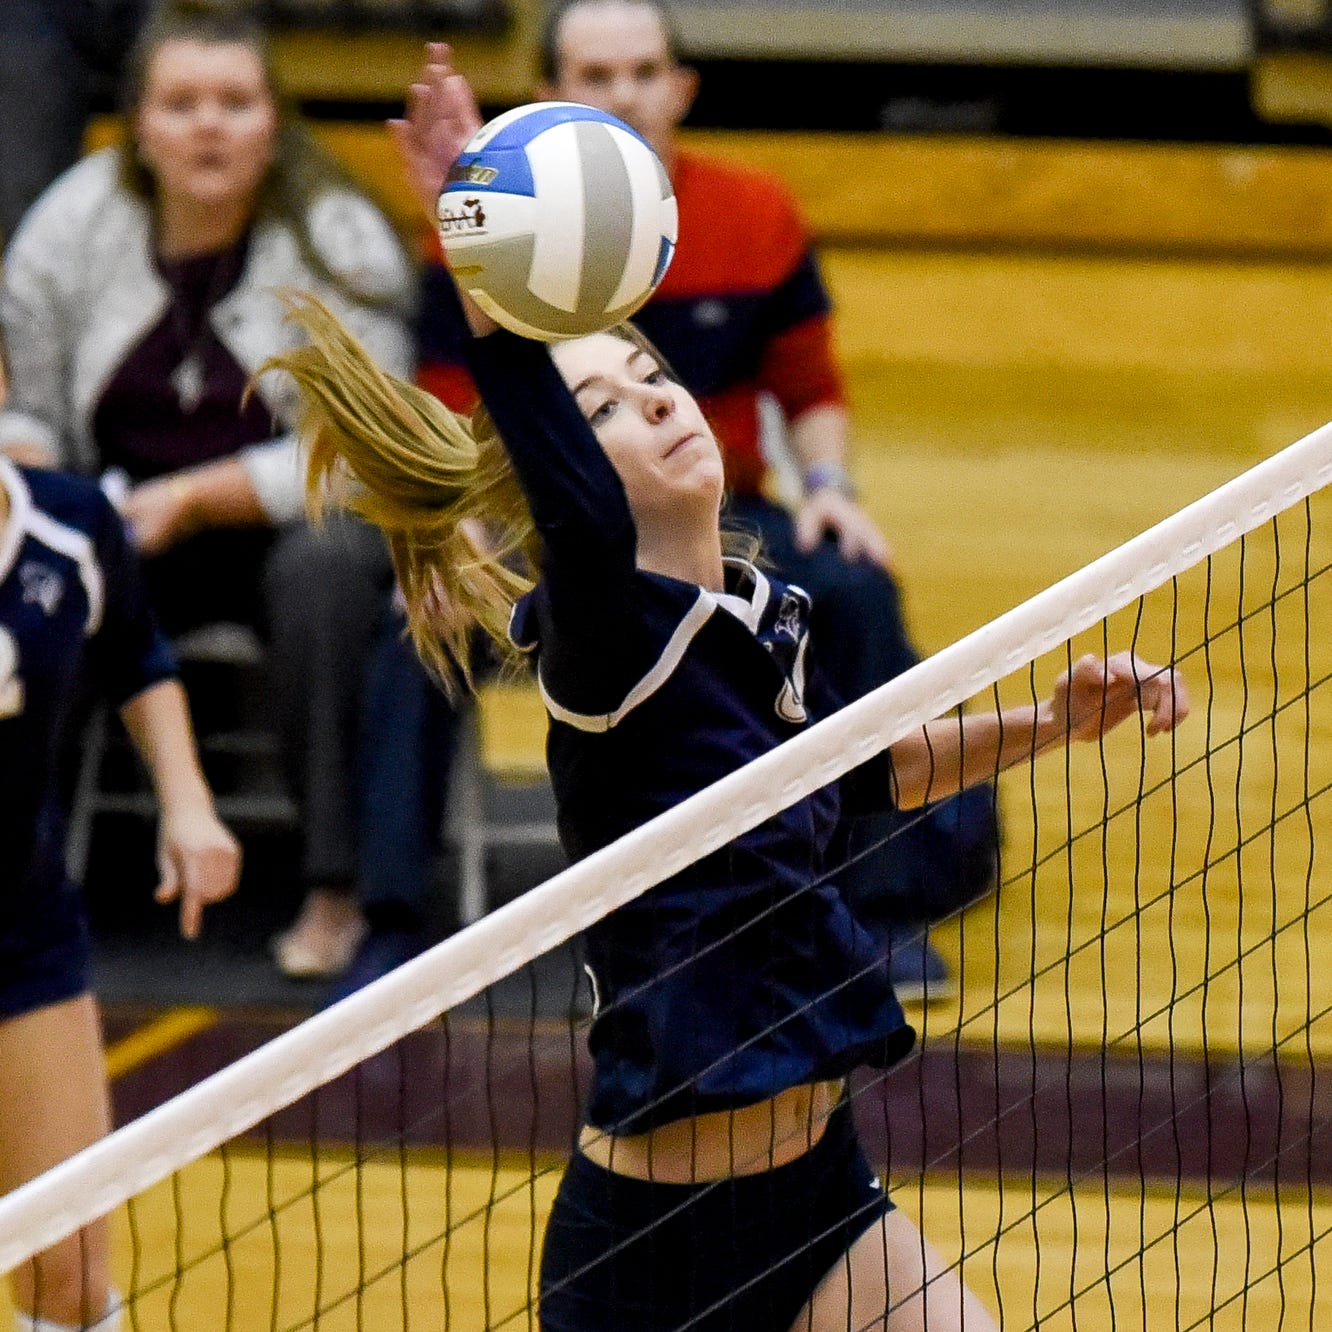 Lakewood's Aubrey O'Gorman hits the ball over the net during the first set against Wixom St. Catherine on Tuesday, Nov. 13, 2018, at Fowlerville High School.